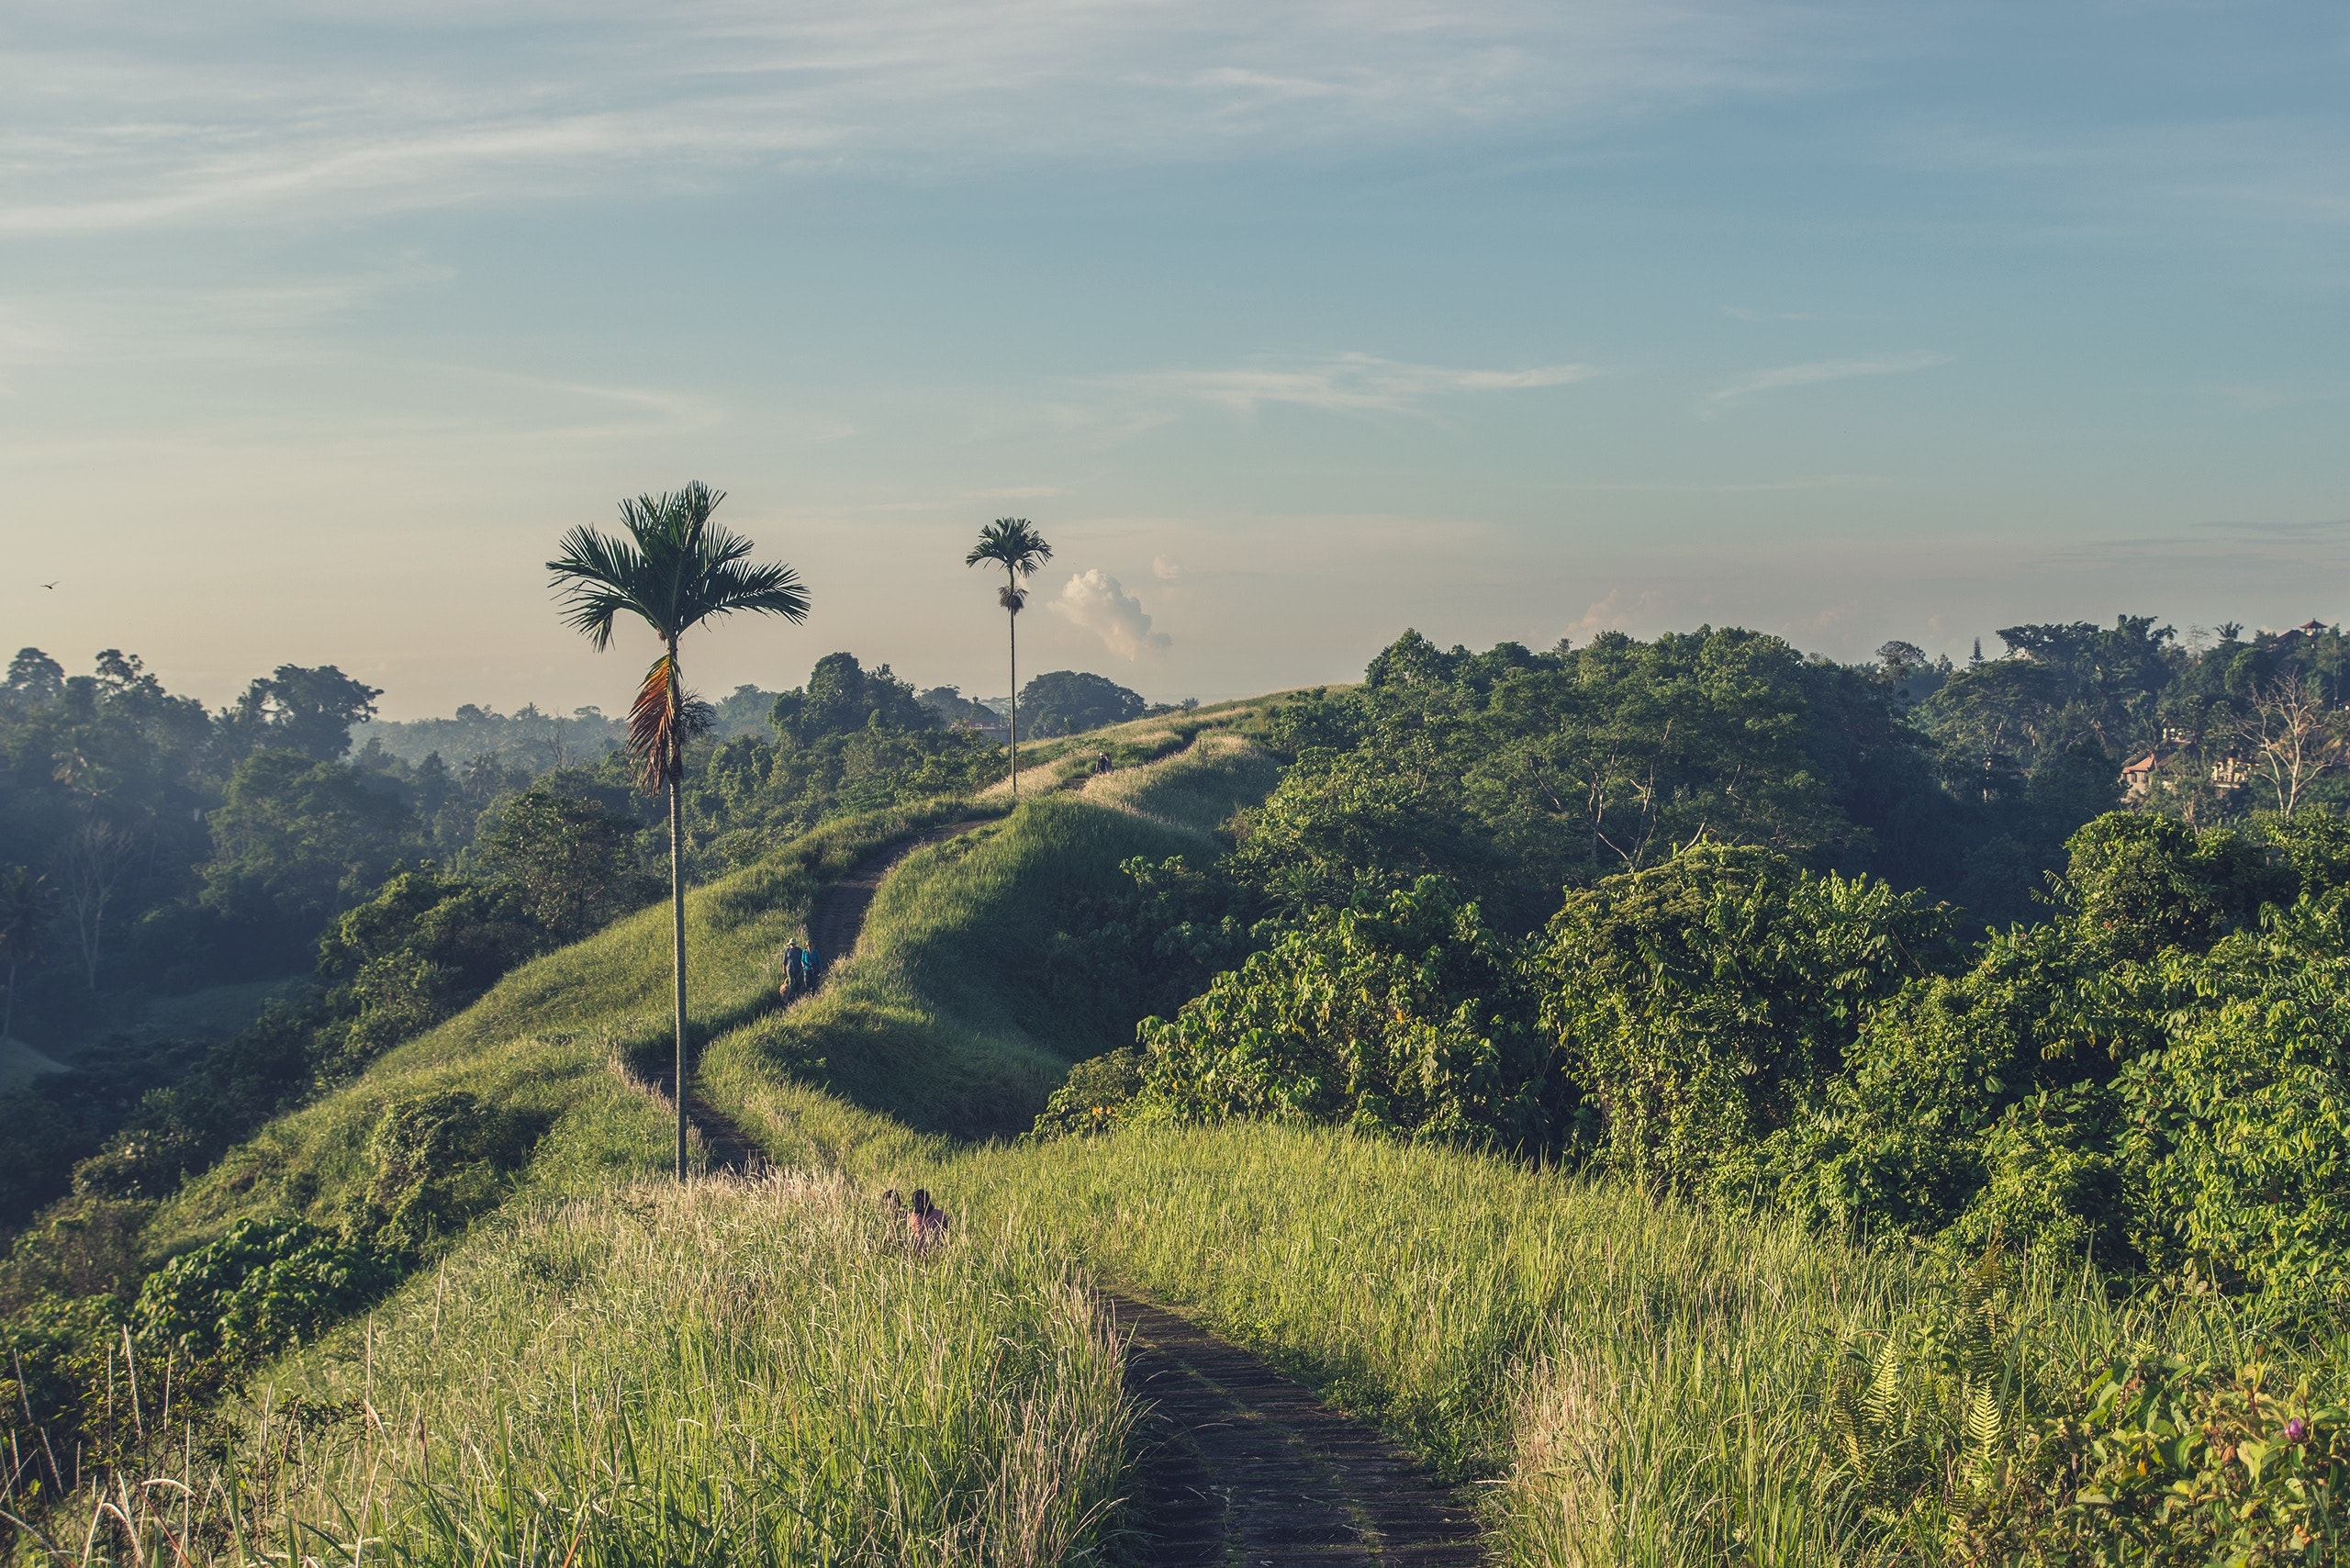 Bali–a small, green island part of Indonesia–is well known for its beaches, religious sites, and meditation retreats.